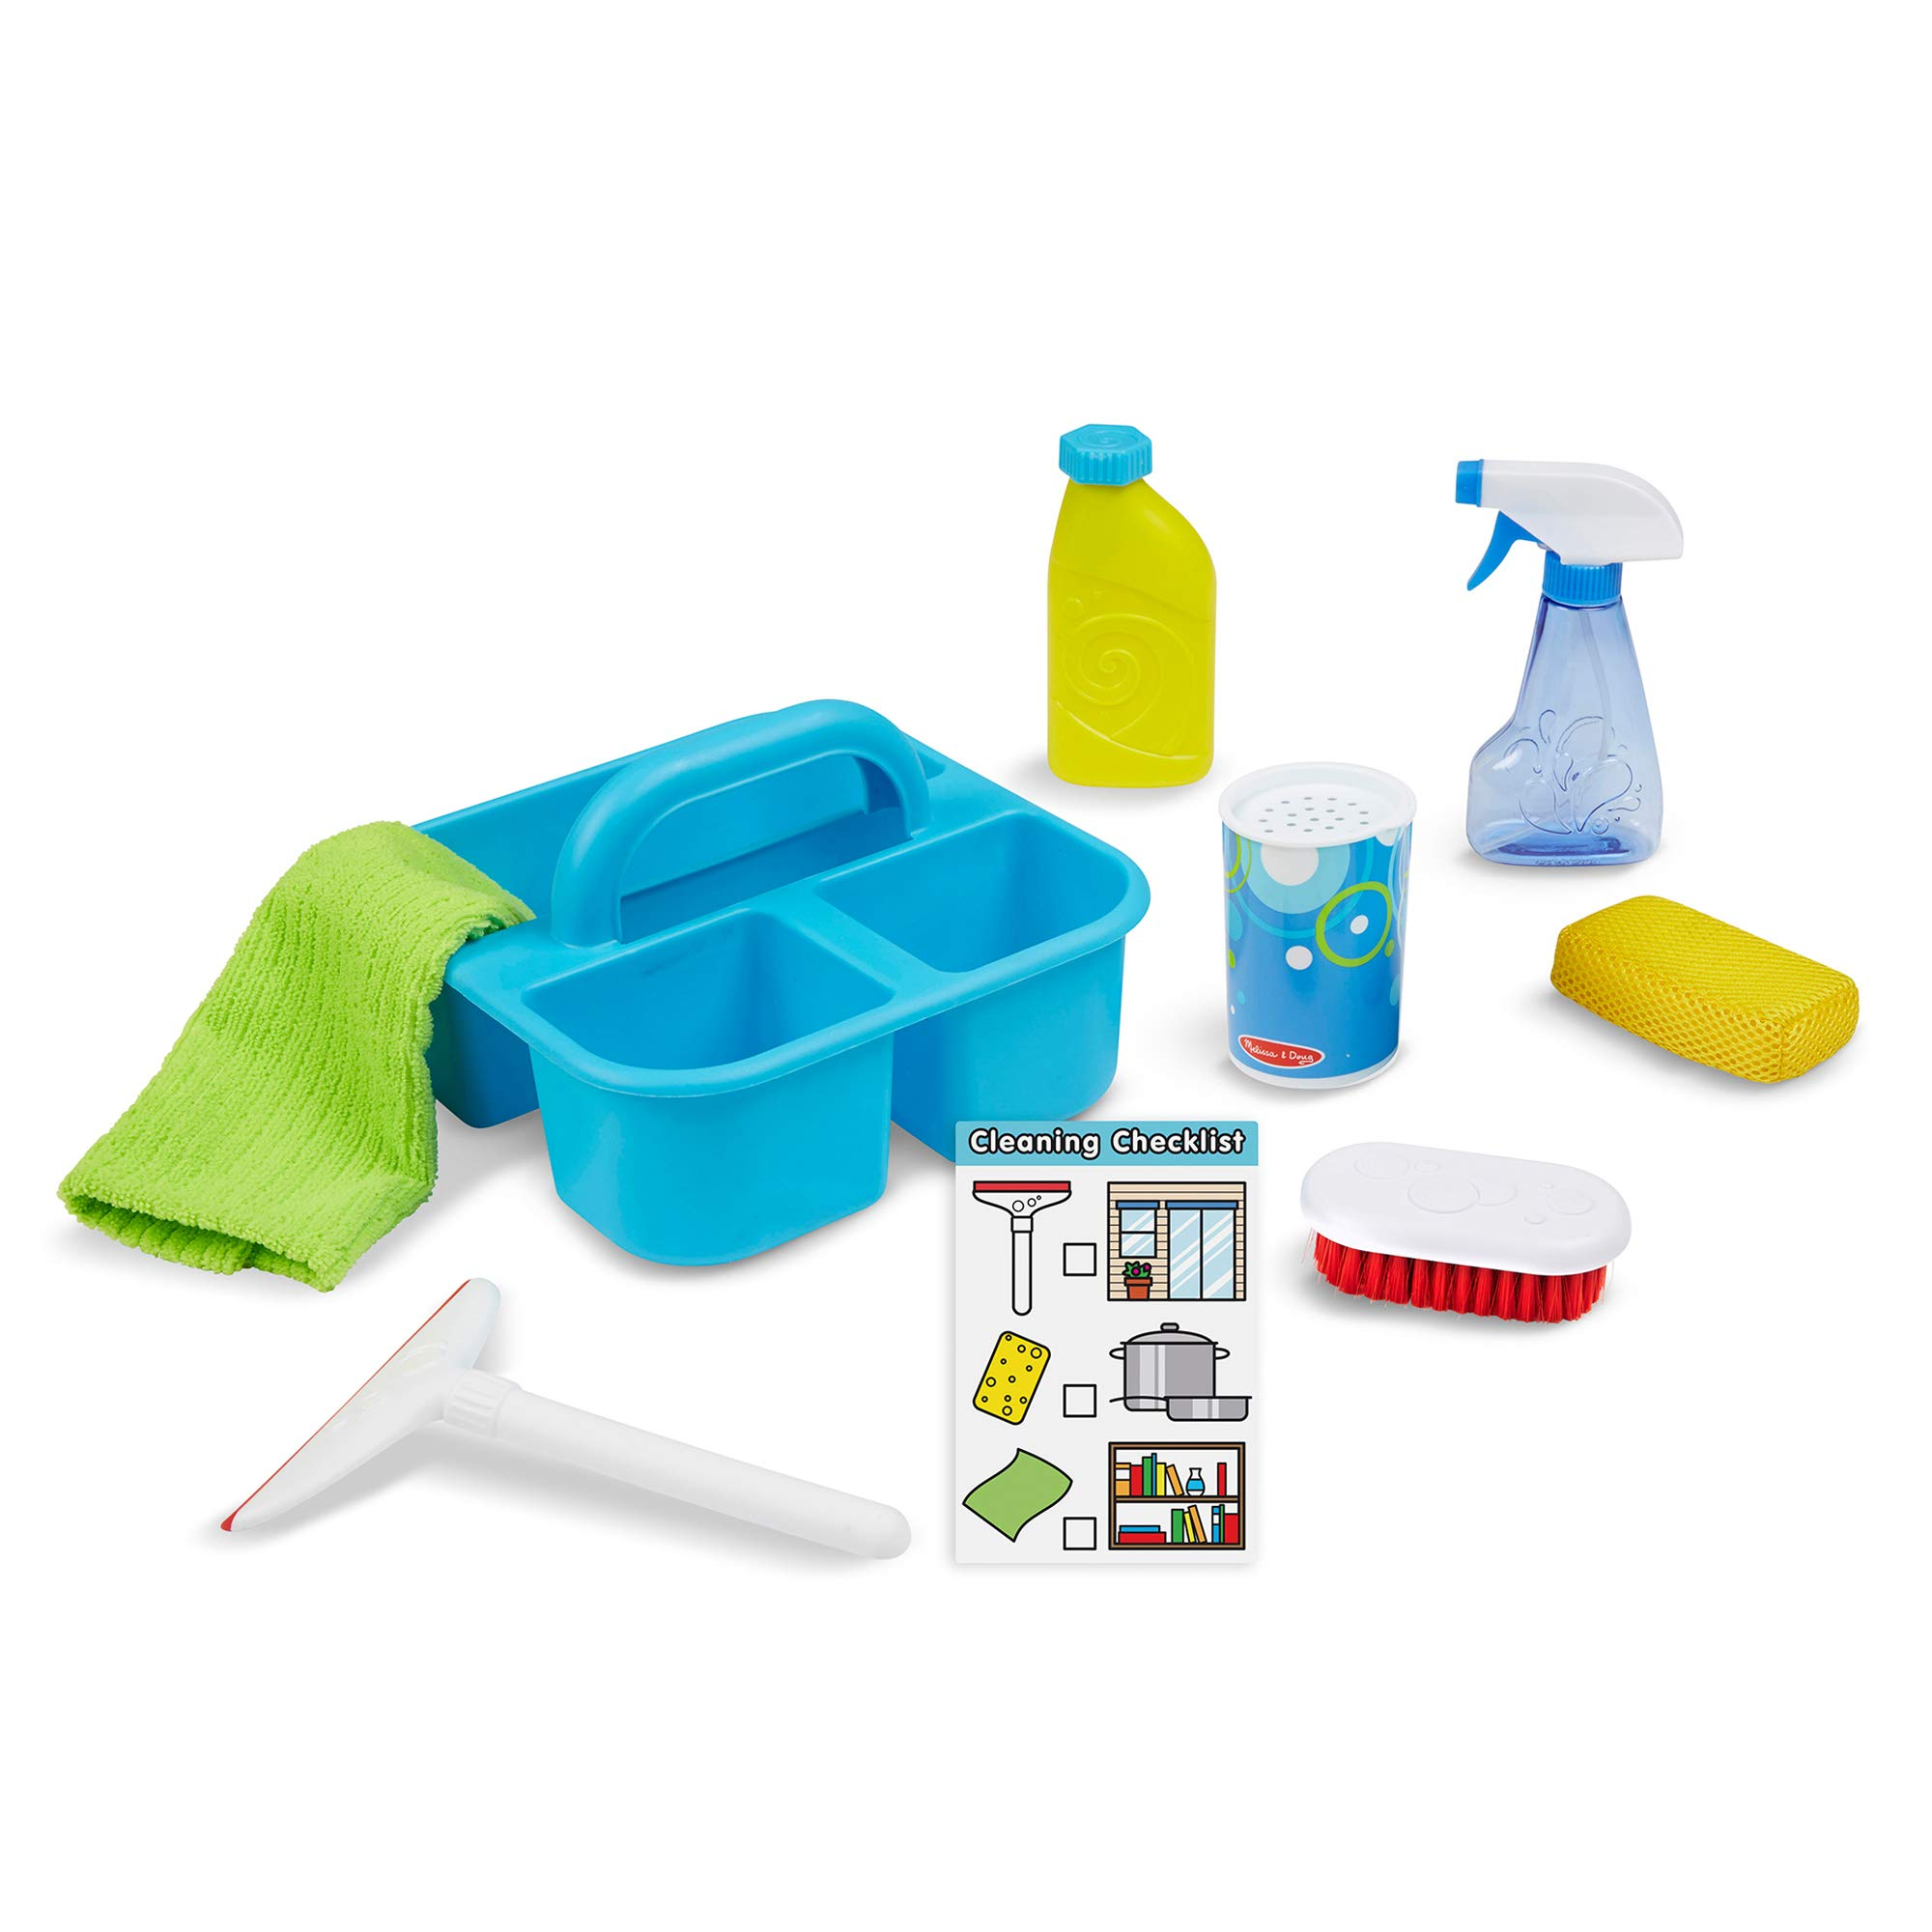 Melissa & Doug Spray, Squirt & Squeegee Play Set (Pretend Play Cleaning Set, Promotes Motor Skills, 8'' H x 8'' W x 8'' L) by Melissa & Doug